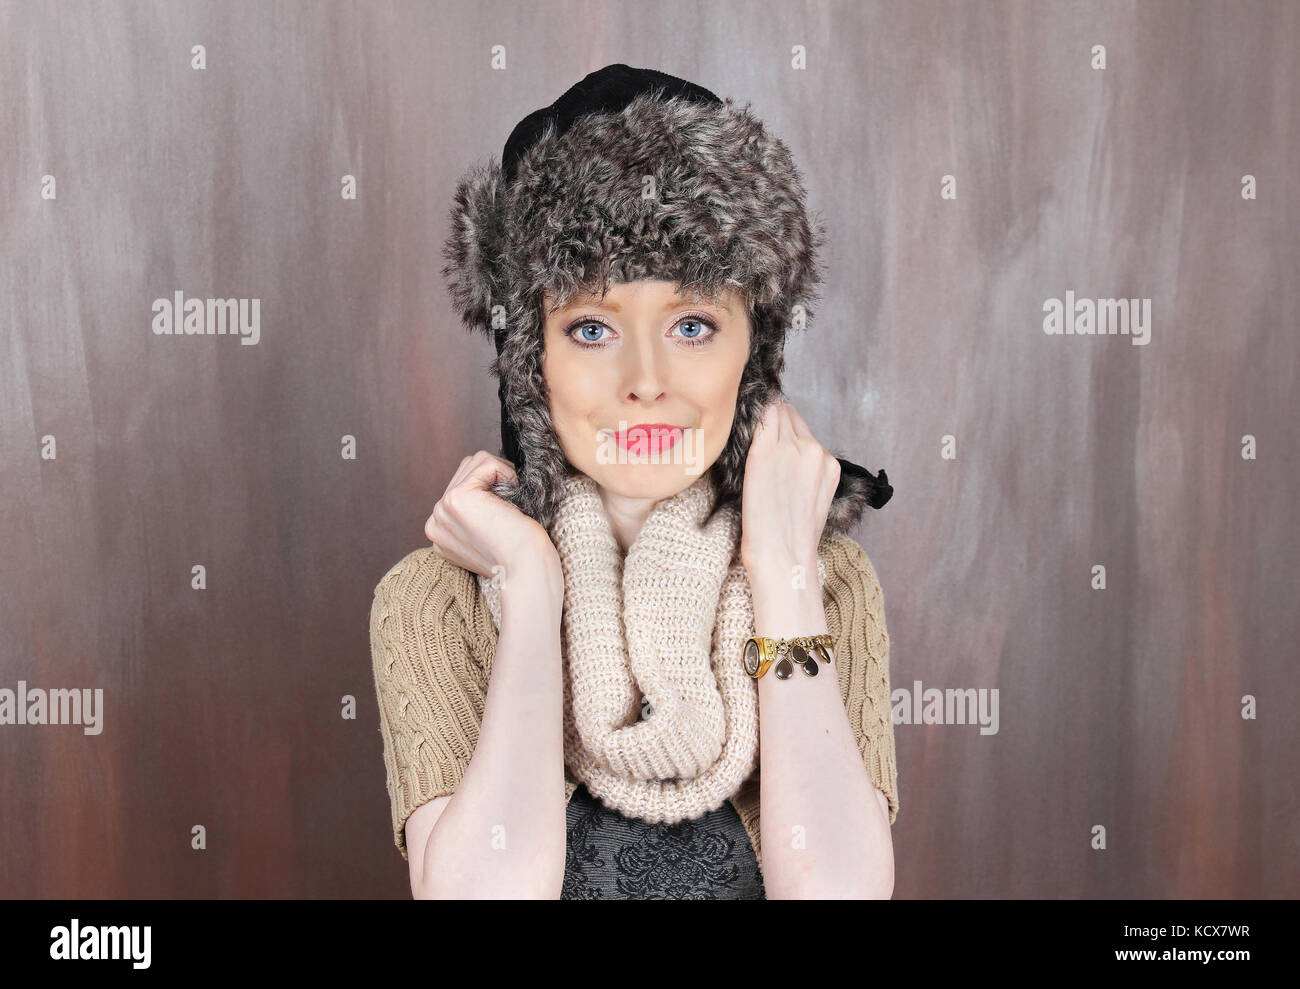 fd7422c1d0c Young beautiful blue eyed girl wearing traditional warm Russian cap with  ear flaps - Stock Image